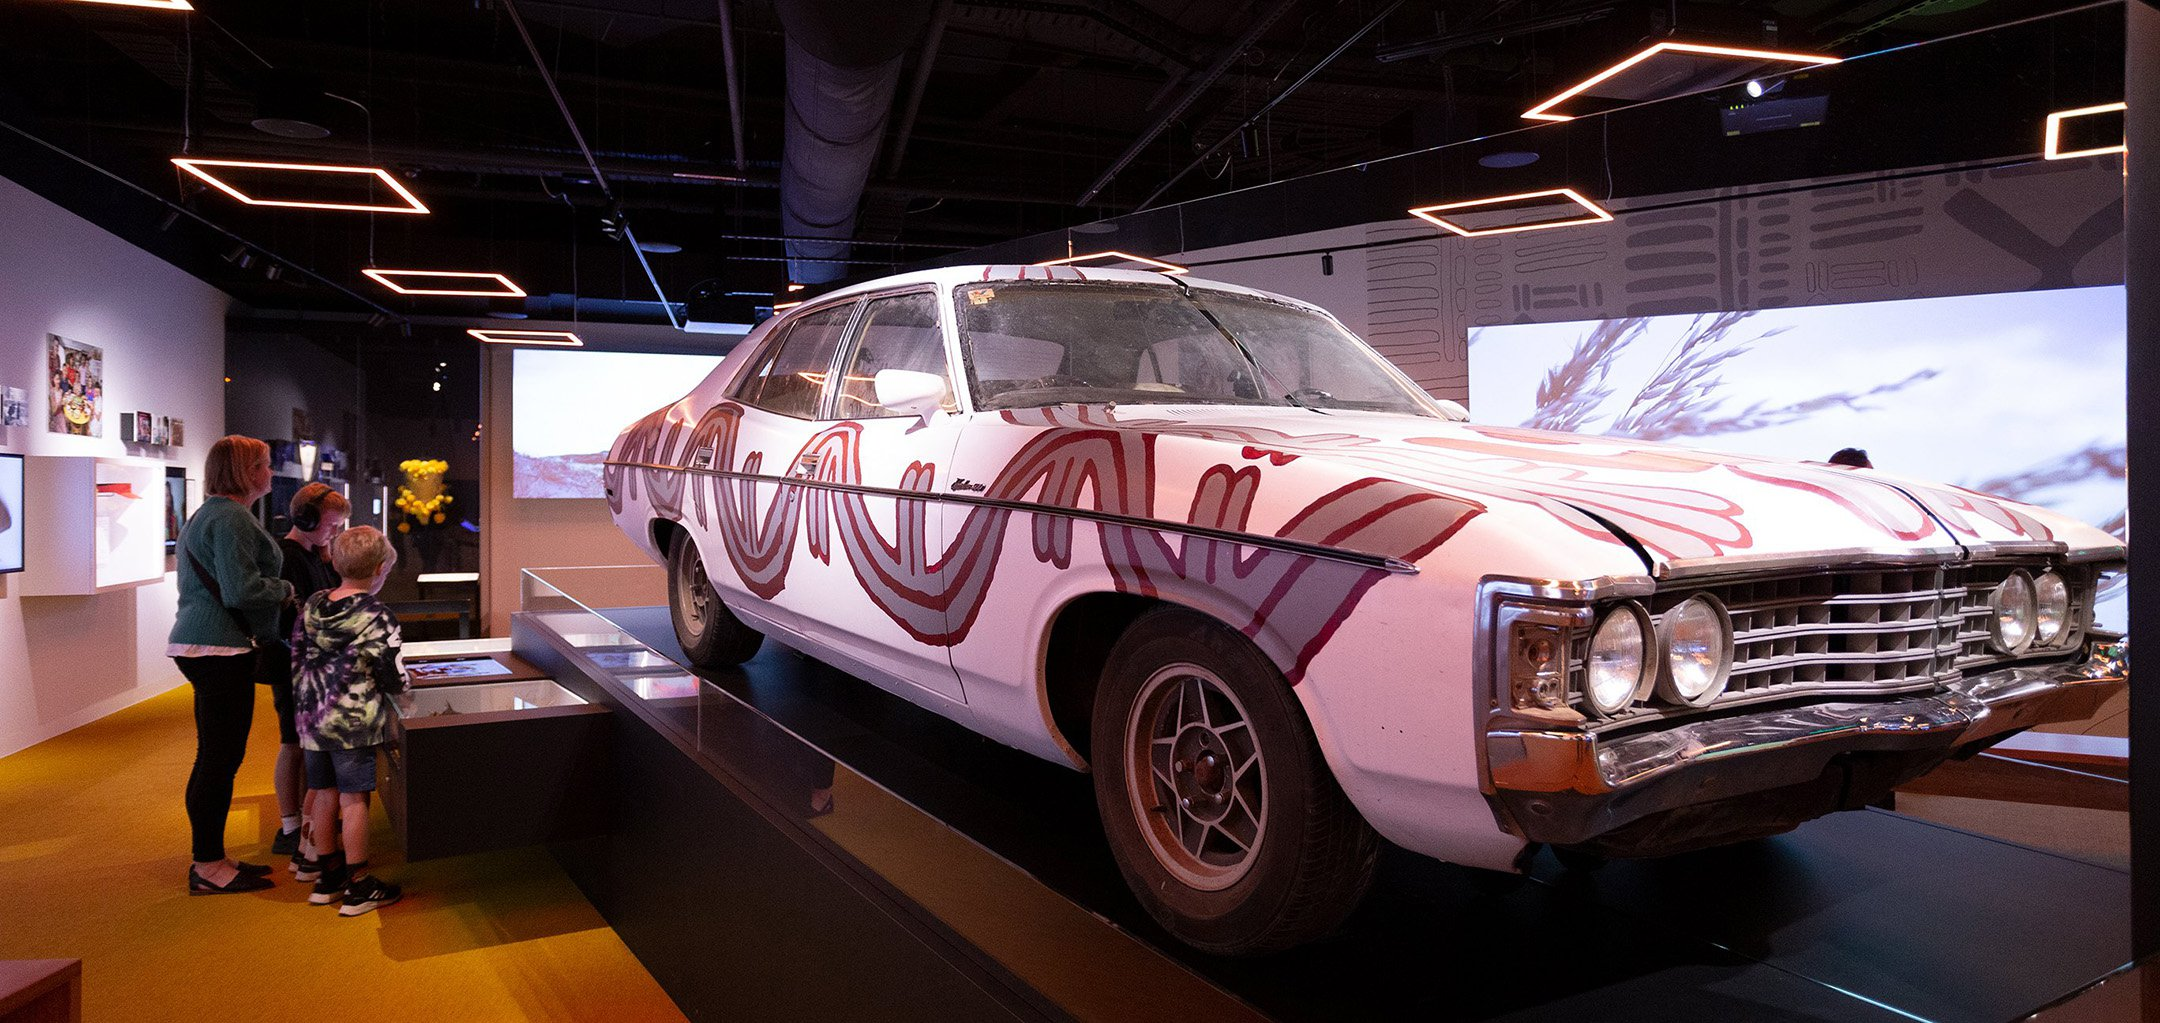 The Bush Mechanics car placed at the centre of the Moving Australia section of The Story of the Moving Image